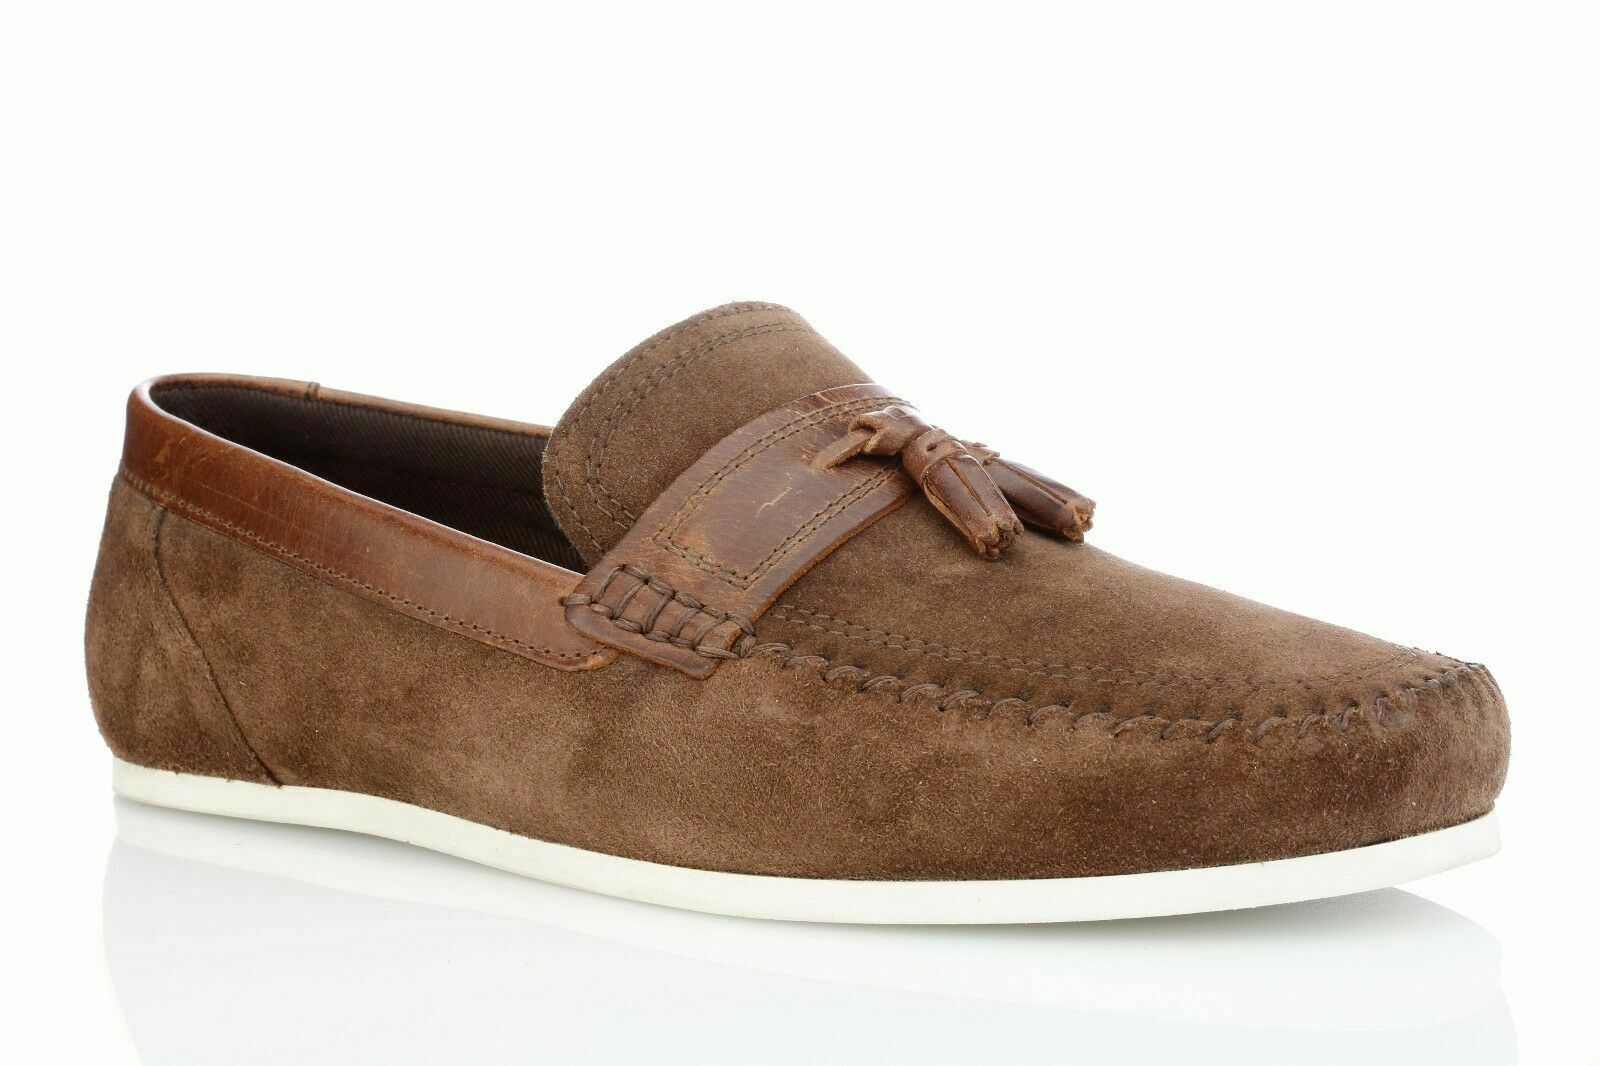 Red Tape Men's Houghton Brown Leather Casual Loafer Boat Deck Driving Shoes